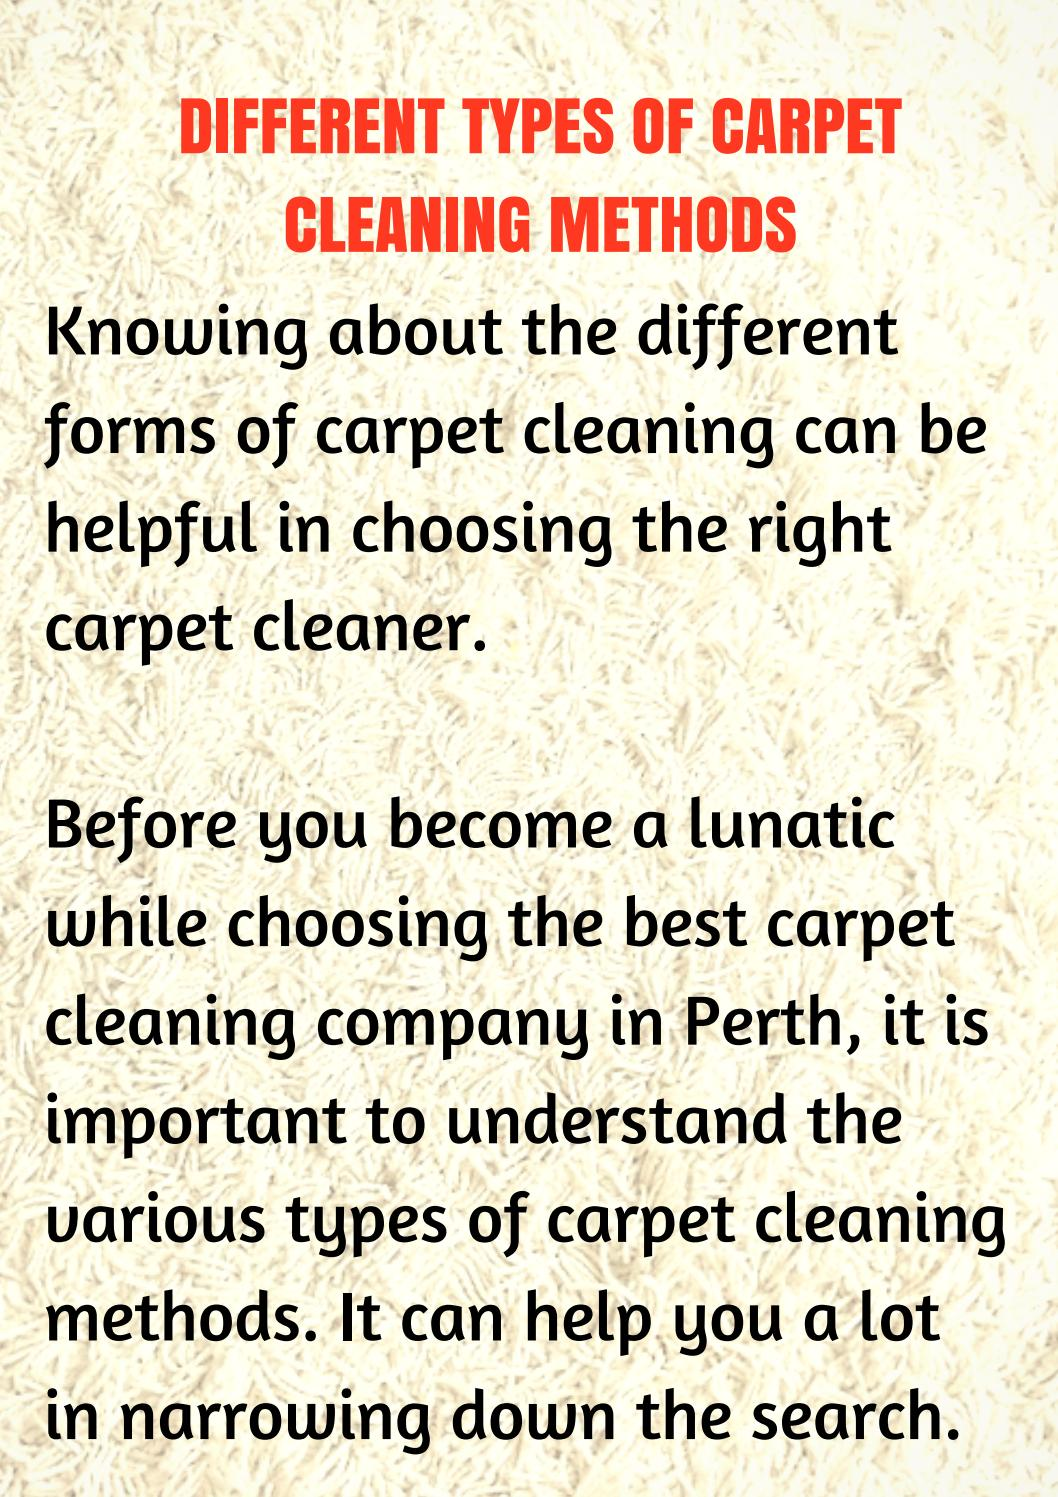 Different Types Of Carpet Cleaning Methods By Perth Carpet